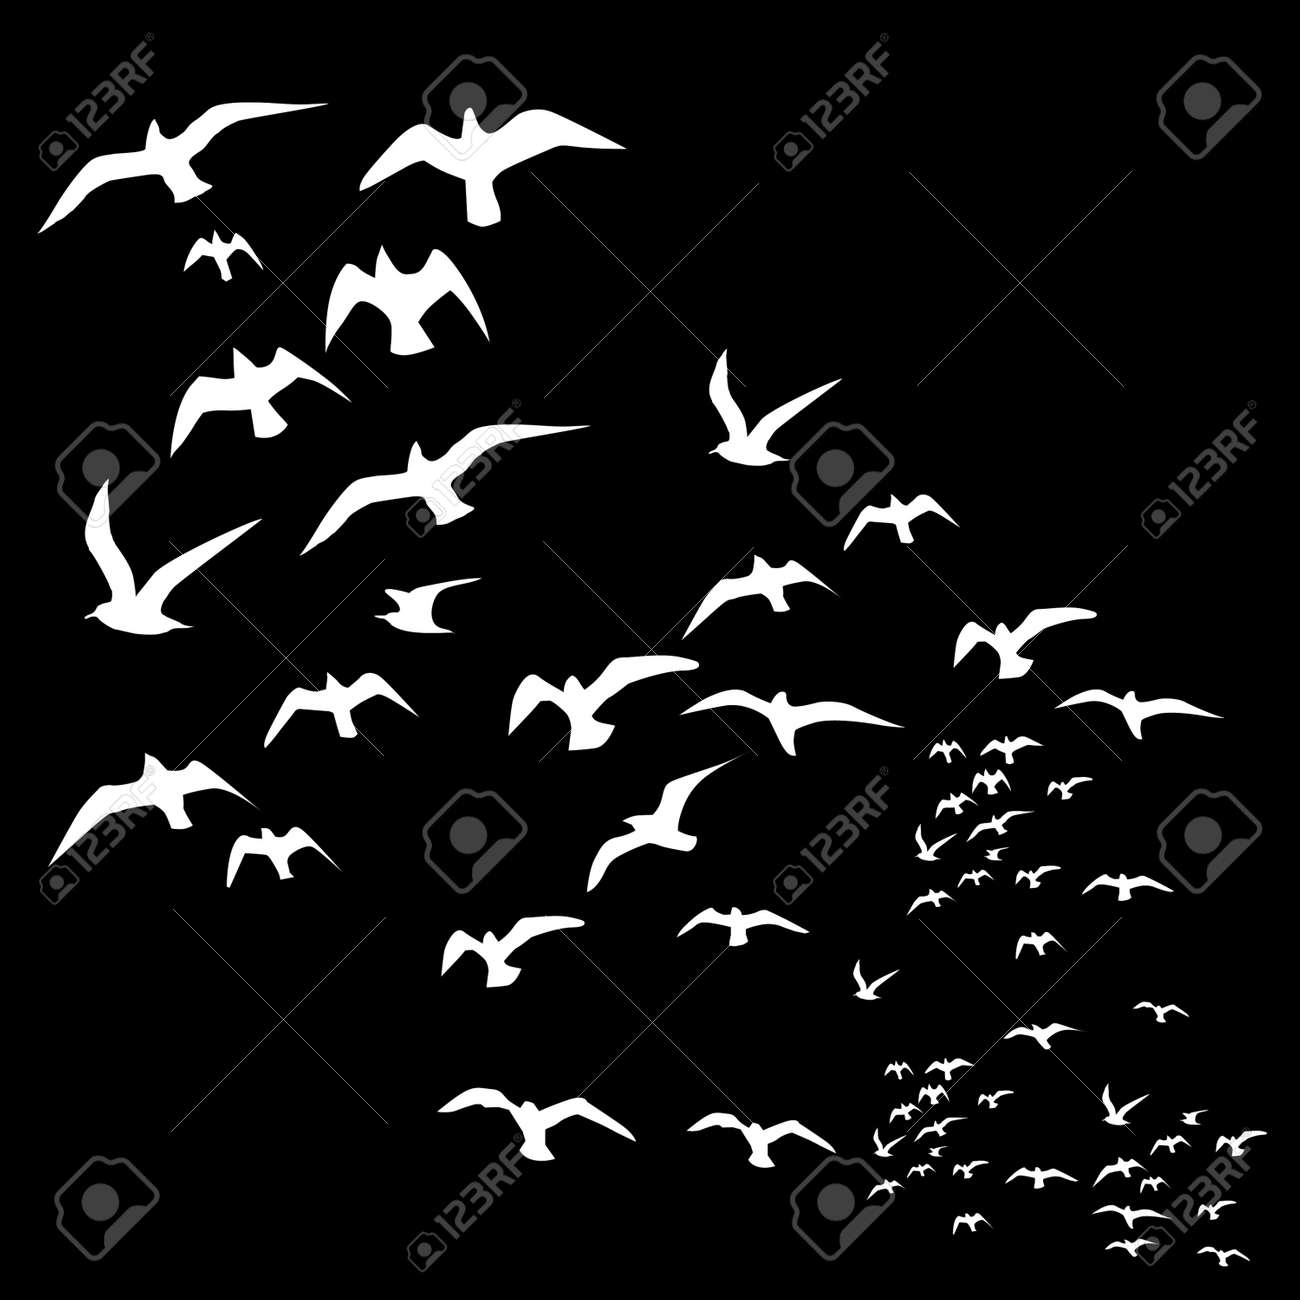 Set of sketches of flying swallows stock vector illustration - Black Background Birds Life Vector Art Stock Vector 22751366